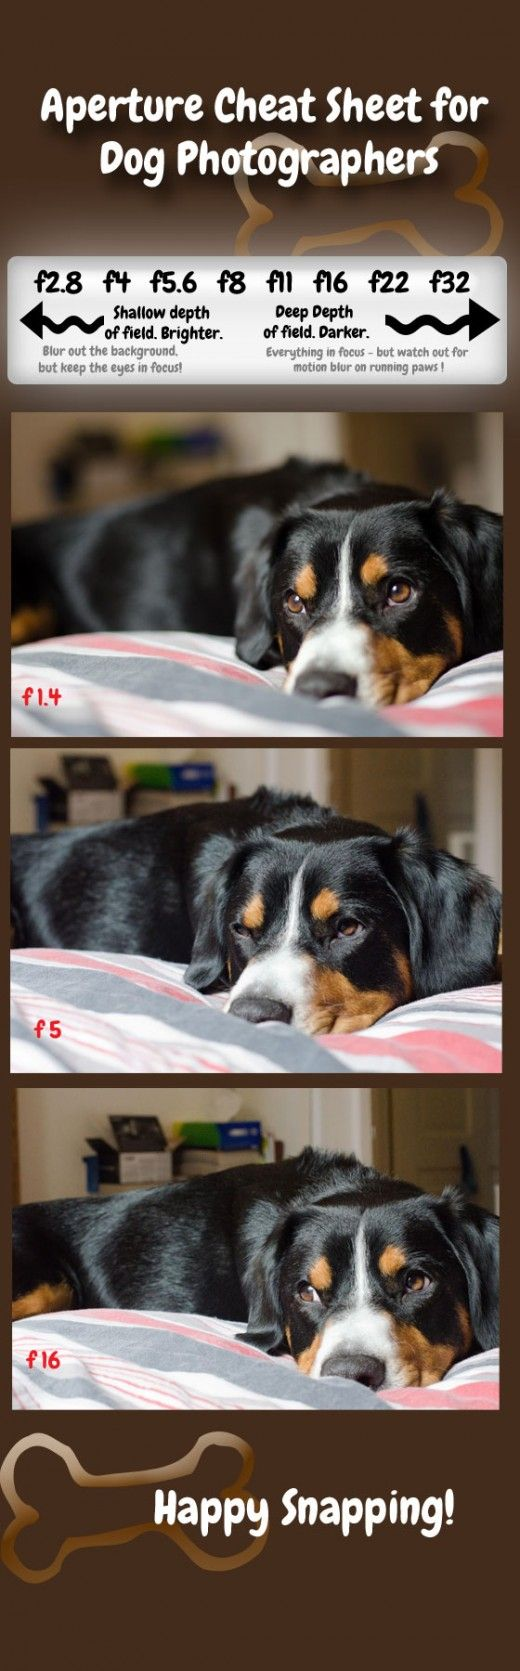 How to Photograph Dogs: What is Aperture and How can it Improve your Pet Photos?